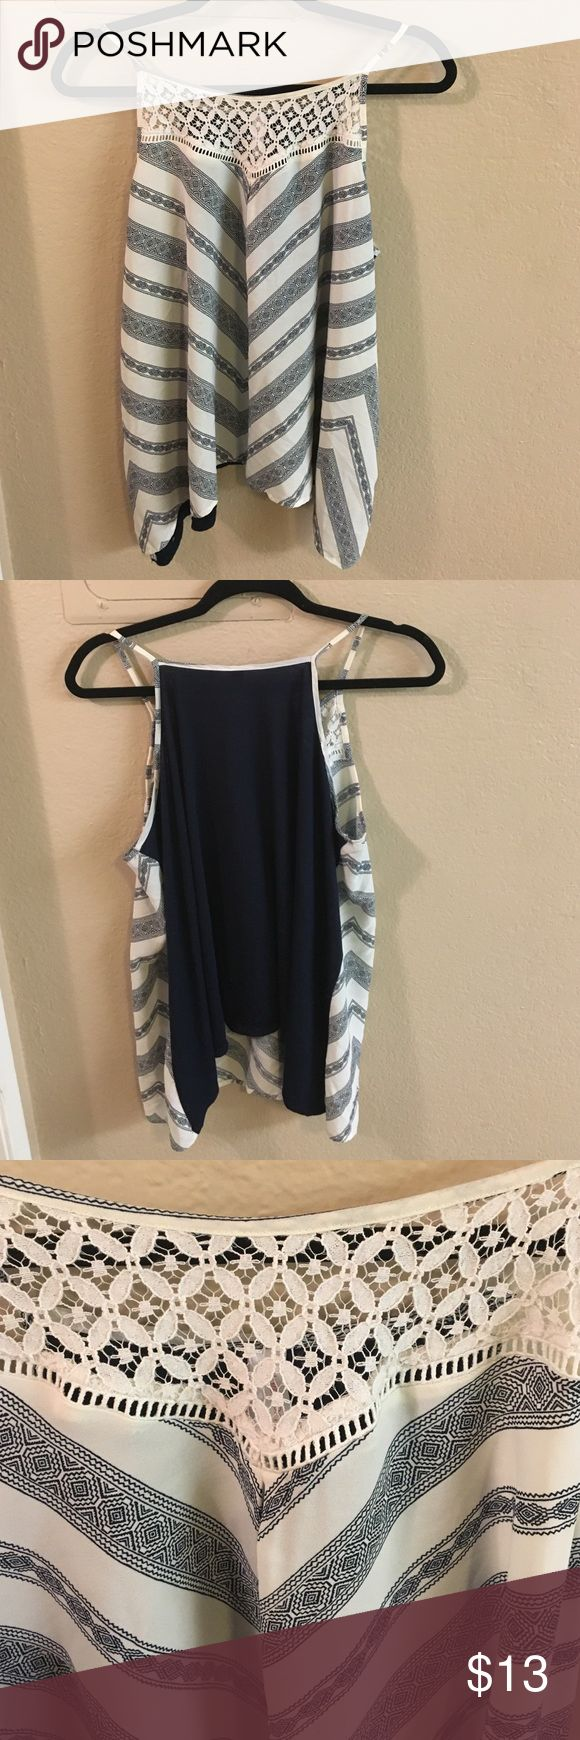 Gorgeous Navy Blue & White shirt. Size XL. This shirt is not for the big breasted ladies! (Learned that the hard way 😞) Navy Blue & White. Brand new, (only tried on) without tags. Very pretty! Xhilaration Tops Tank Tops